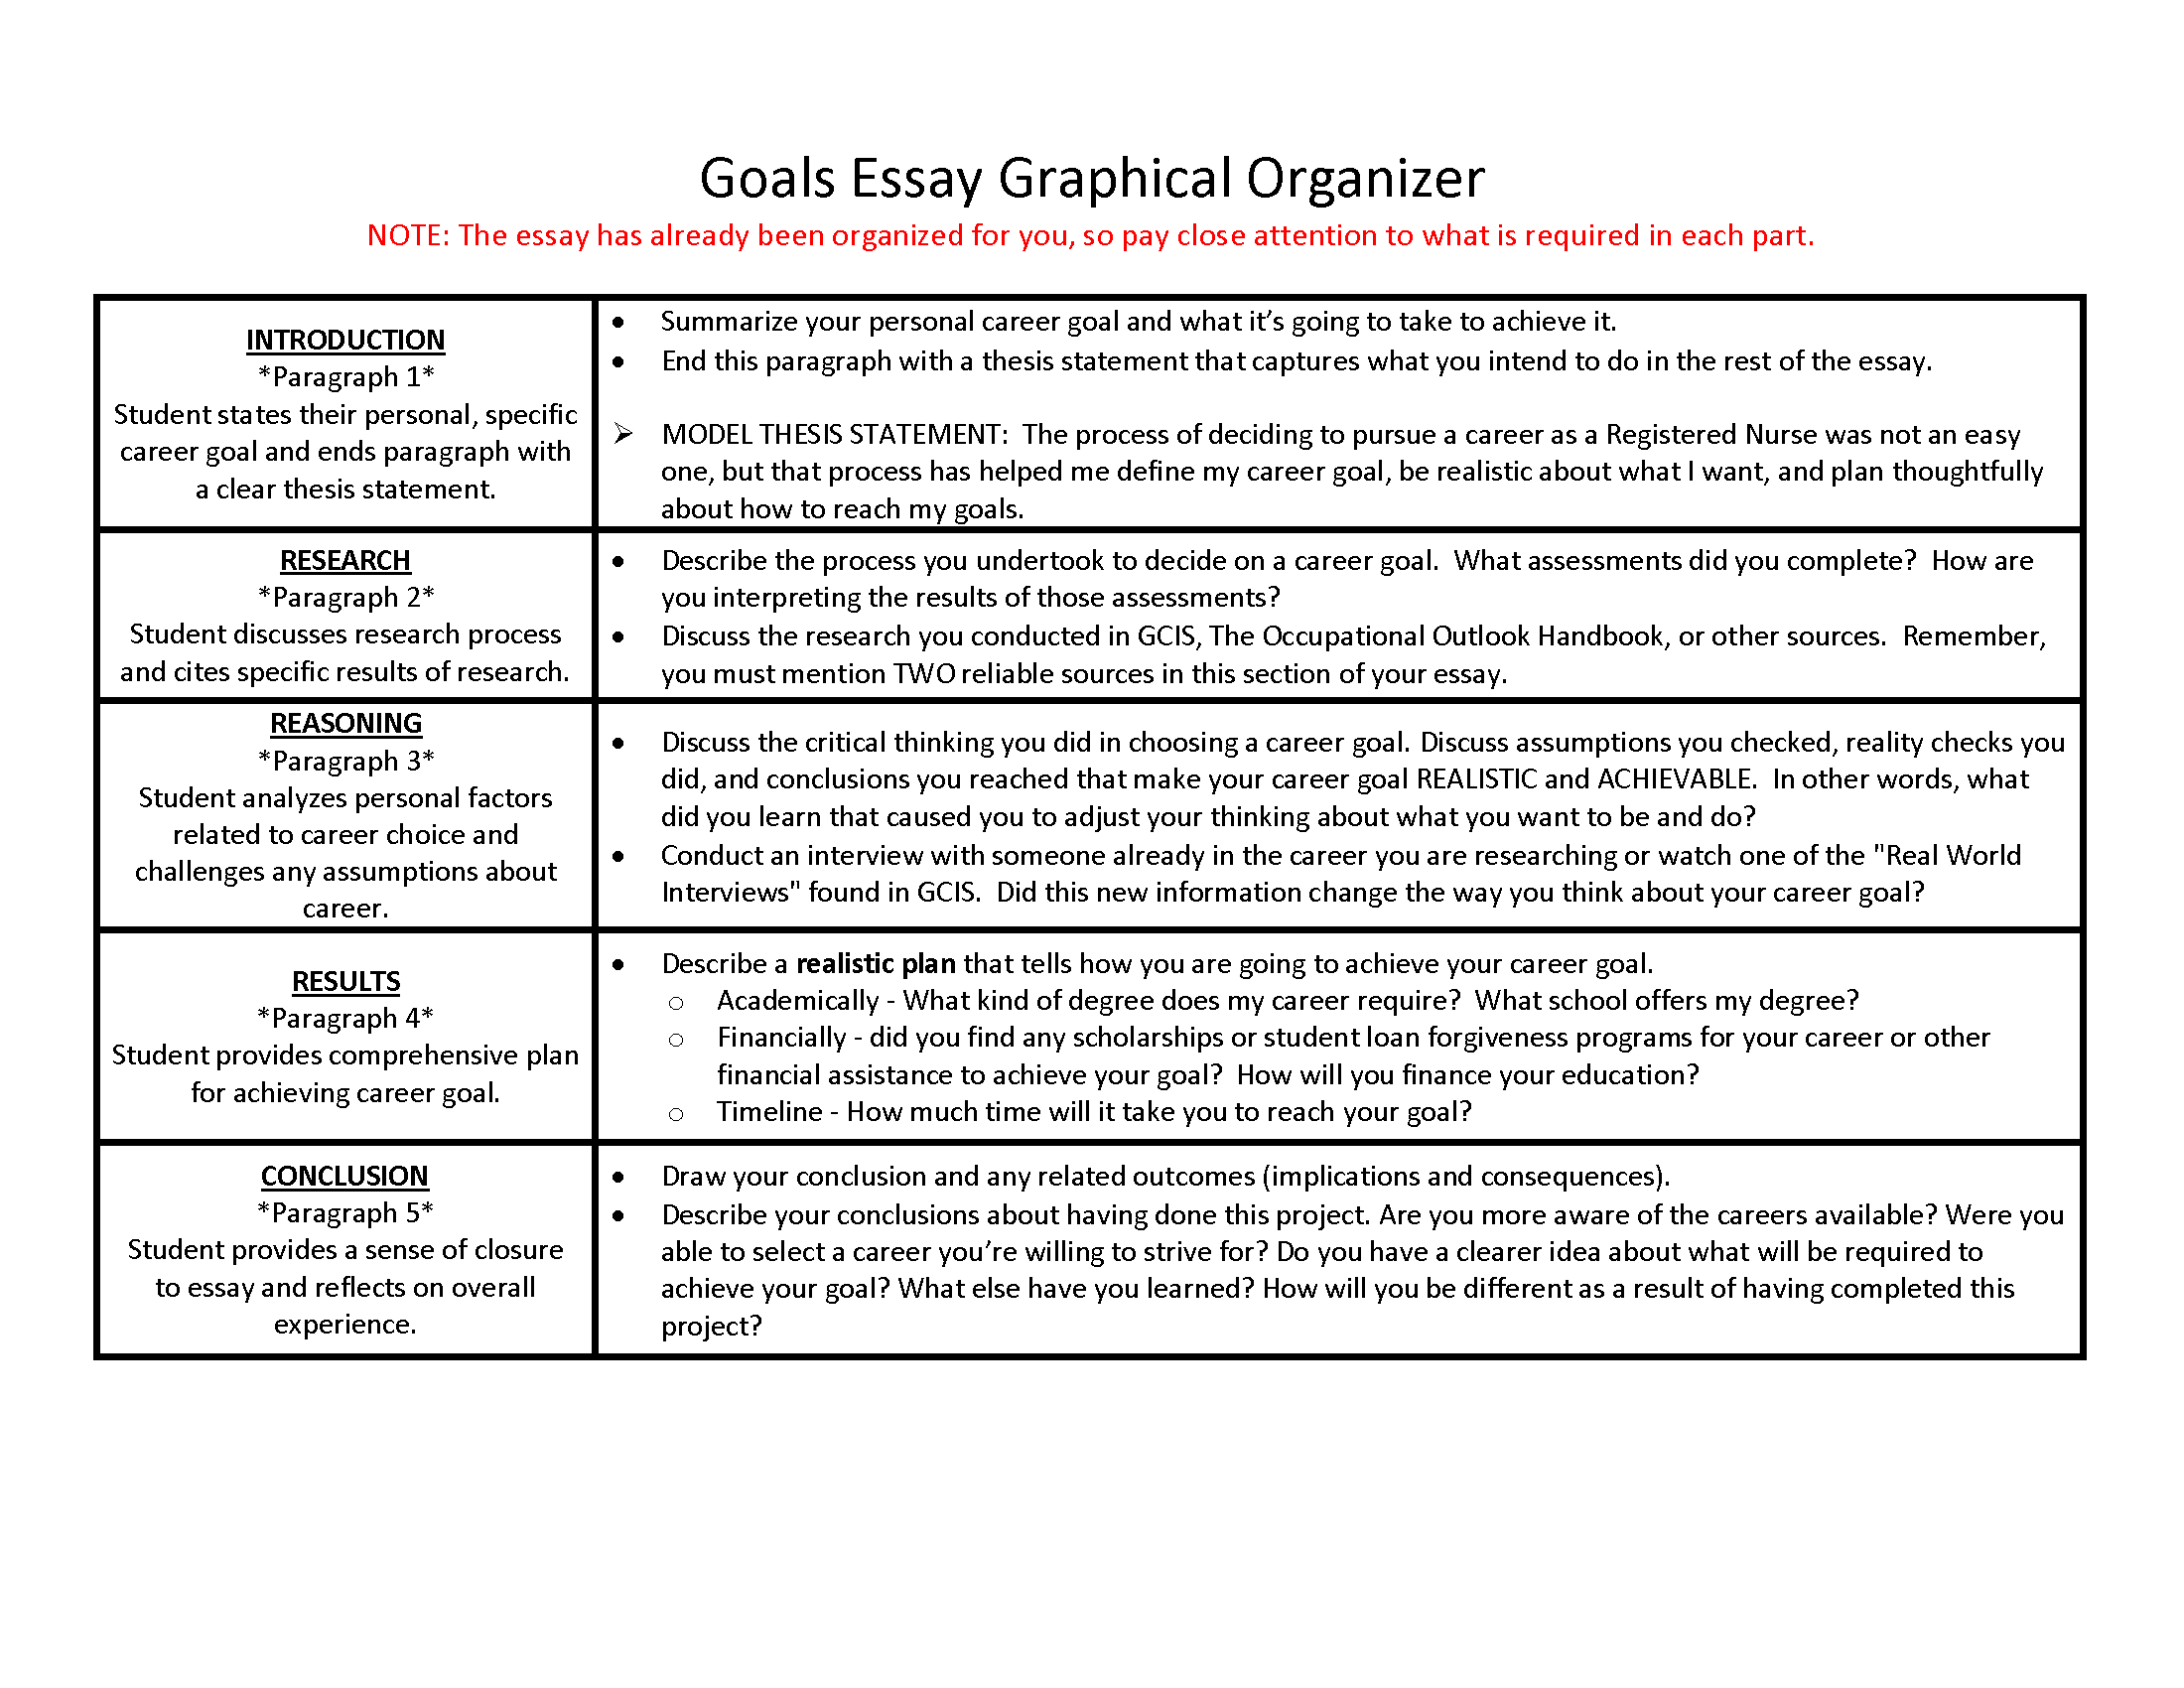 Critique essay guidelines